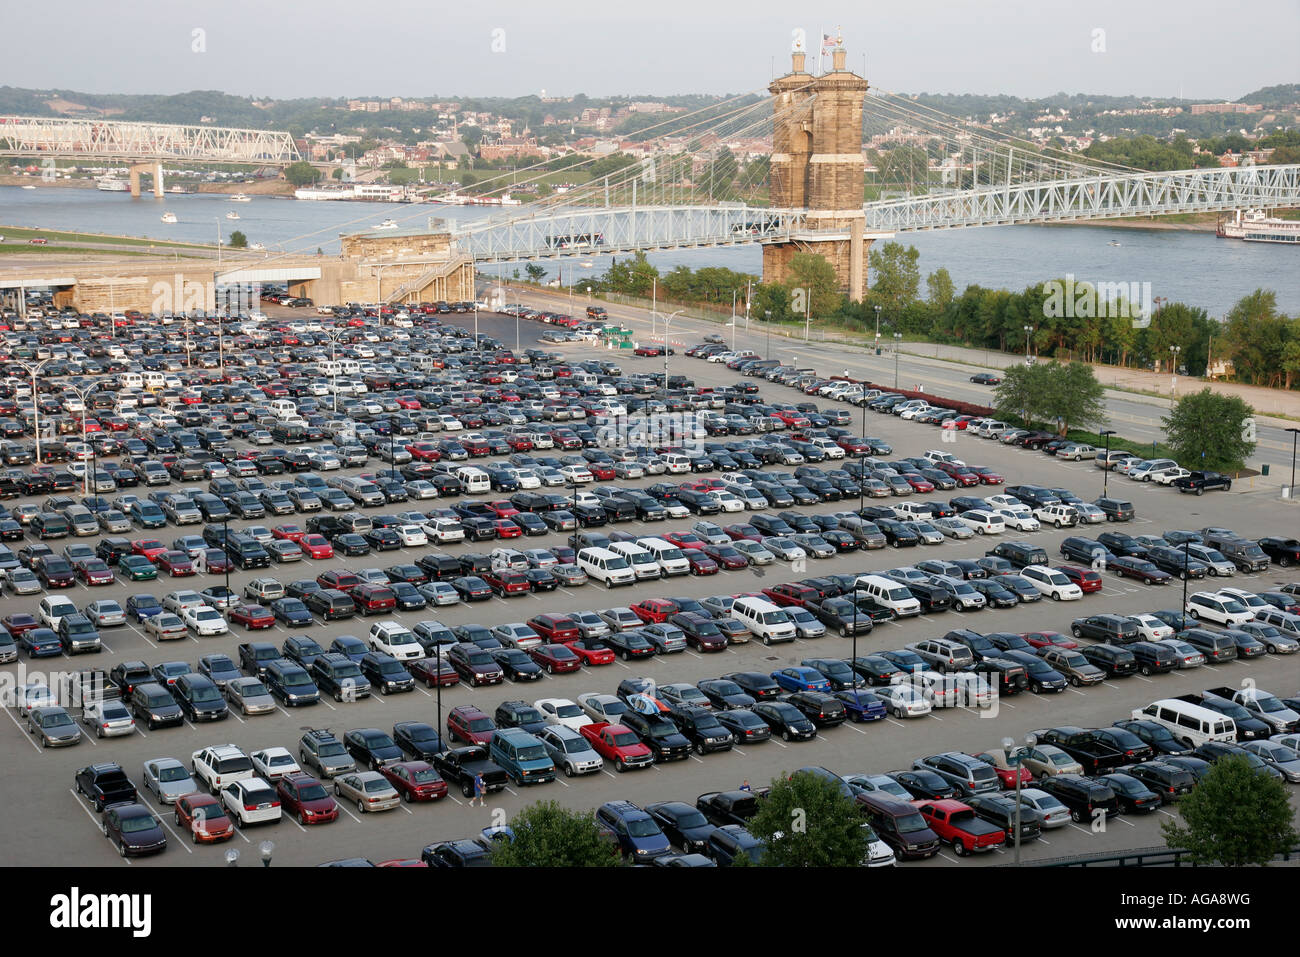 ohio cincinnati paul brown stadium parking lot ohio river vehicles stock photo royalty free. Black Bedroom Furniture Sets. Home Design Ideas